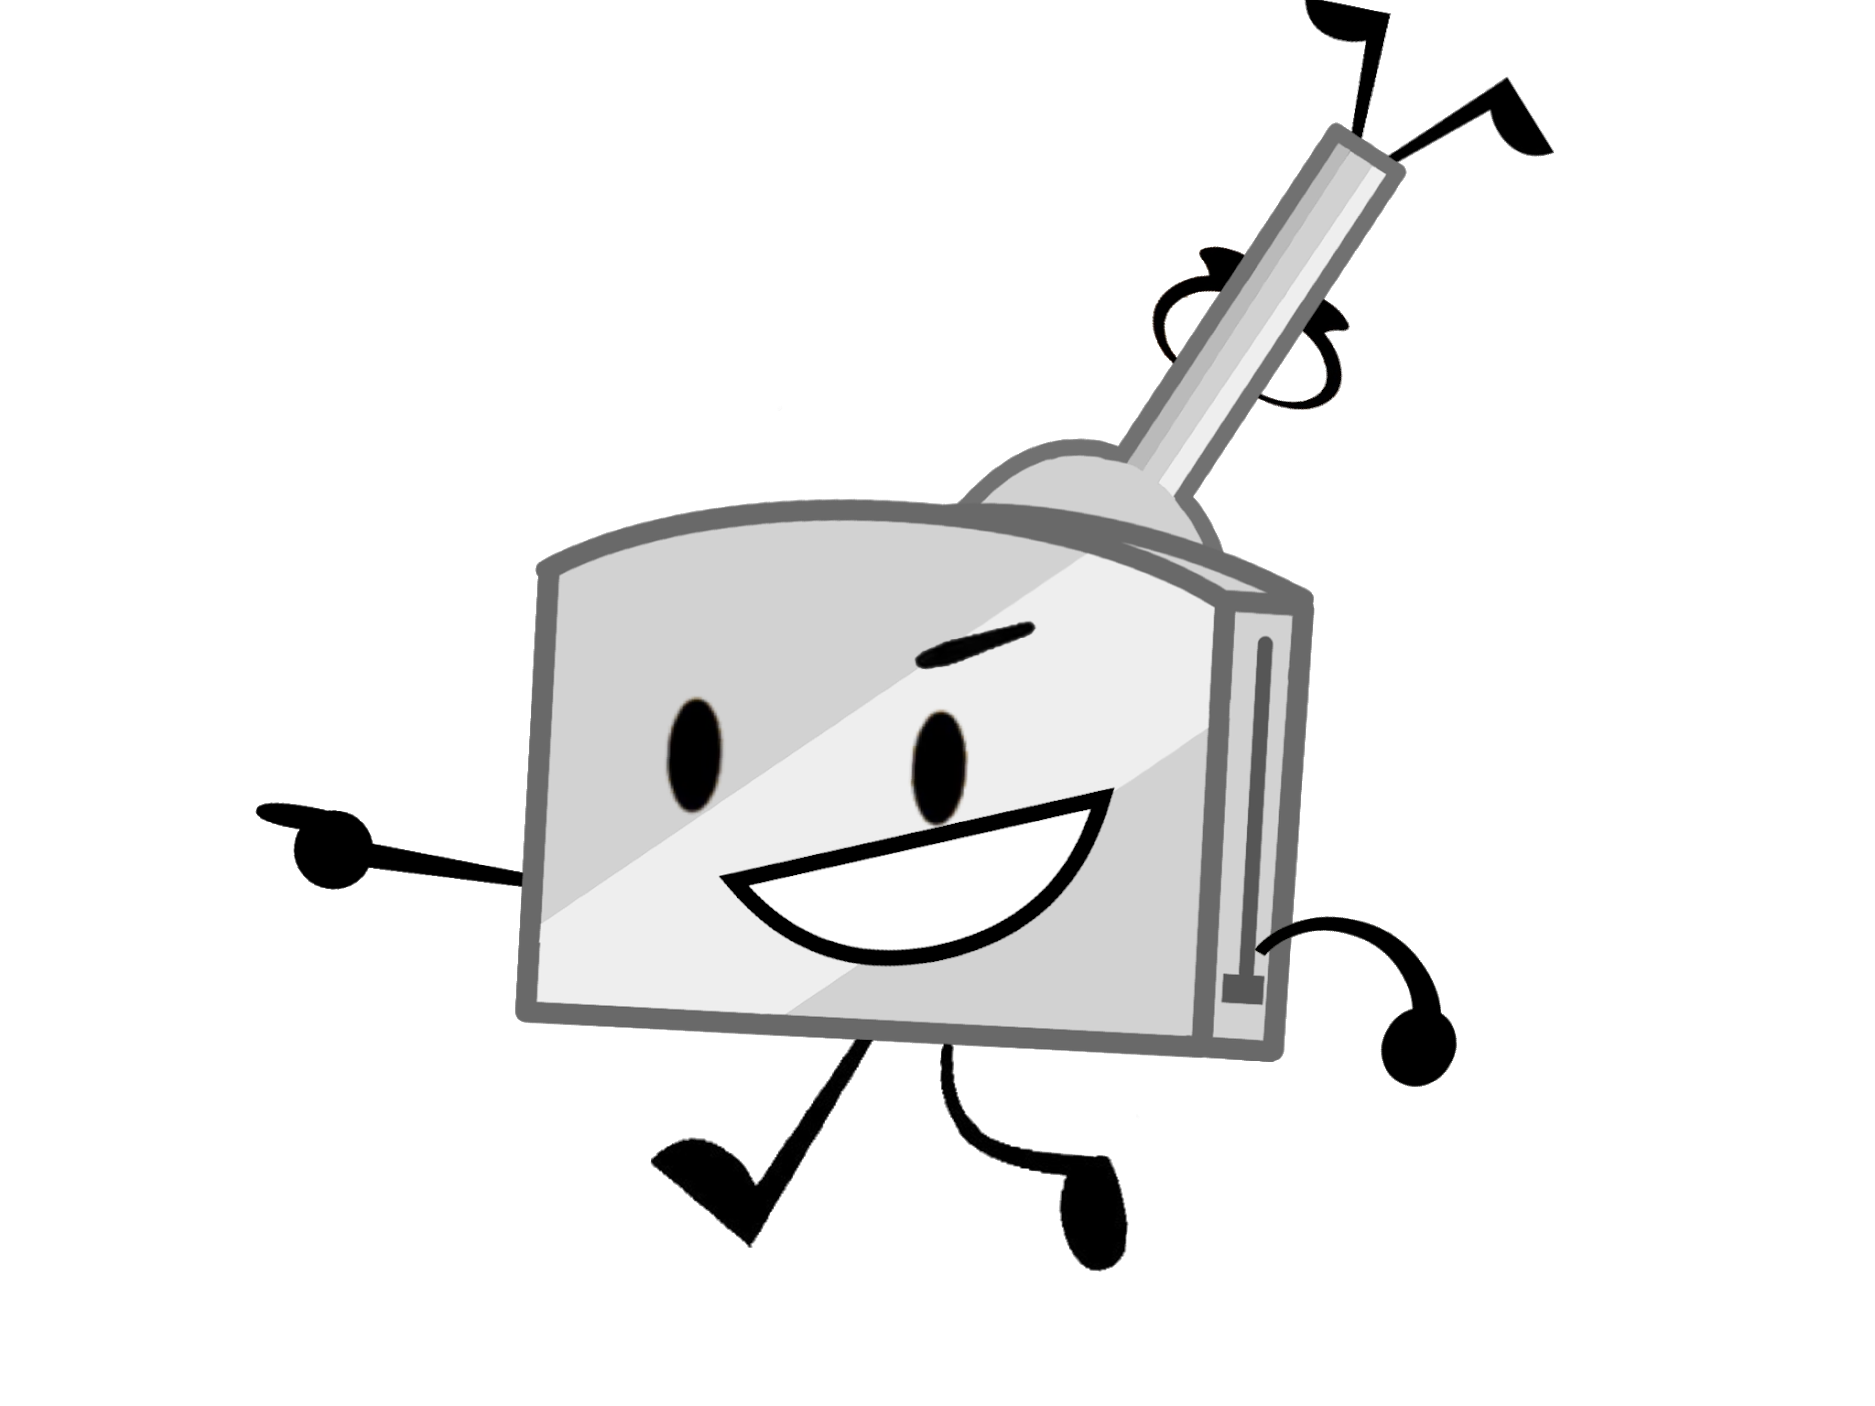 Drawing free download best. Toaster clipart bad